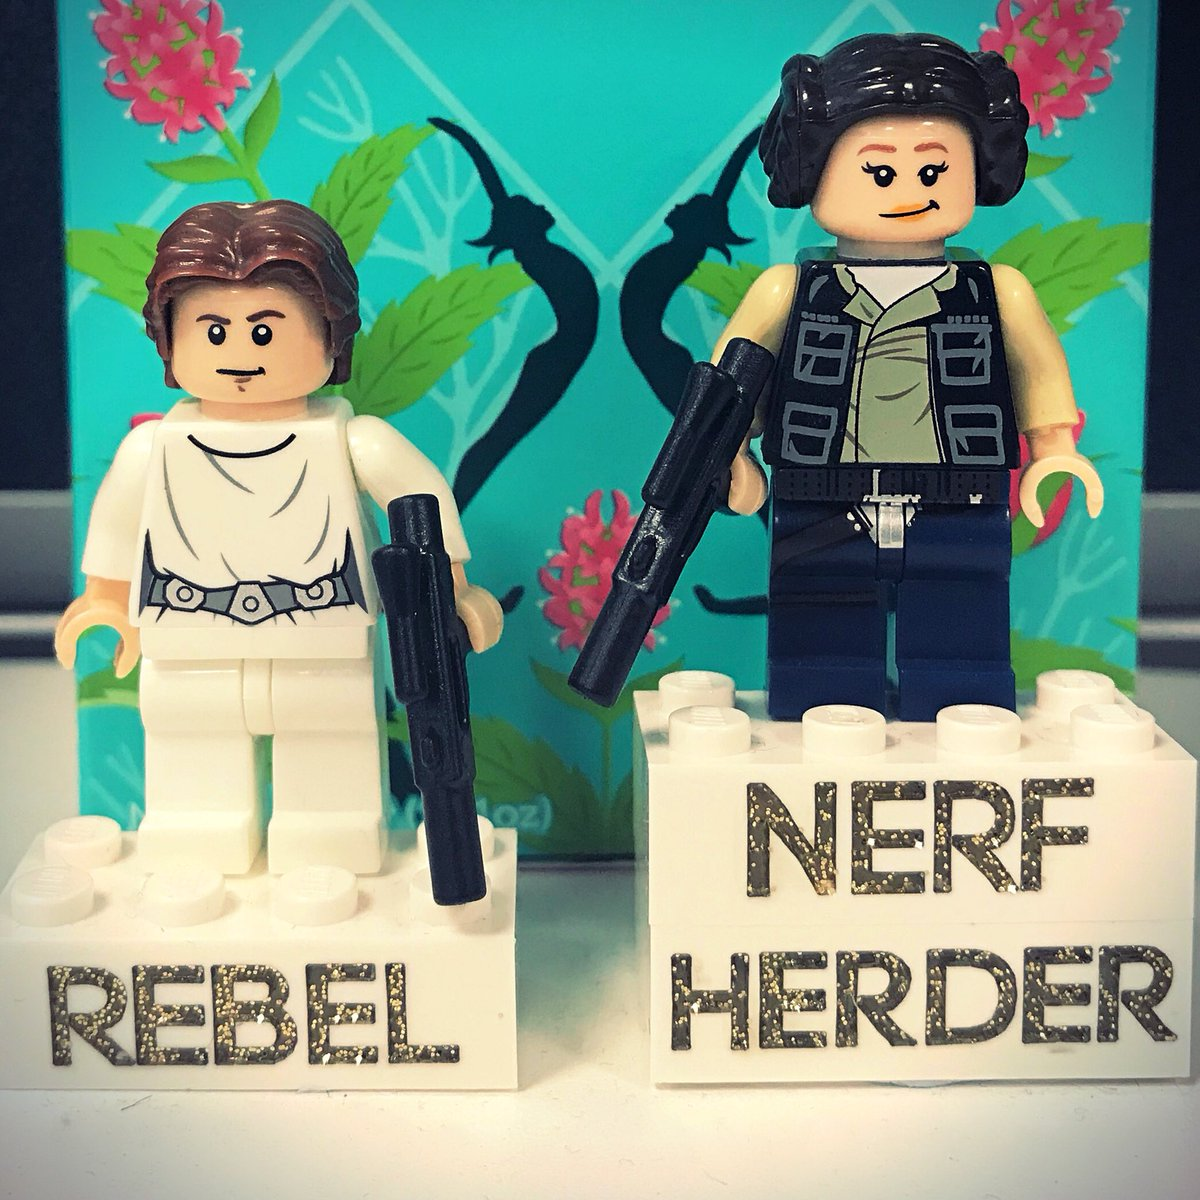 ...when you're having a slow day at work and the most exciting thing is swapping the heads on your #LEGO #StarWars #PrincessLeia and #HanSolo!  <br>http://pic.twitter.com/Q6PjcnGbMV